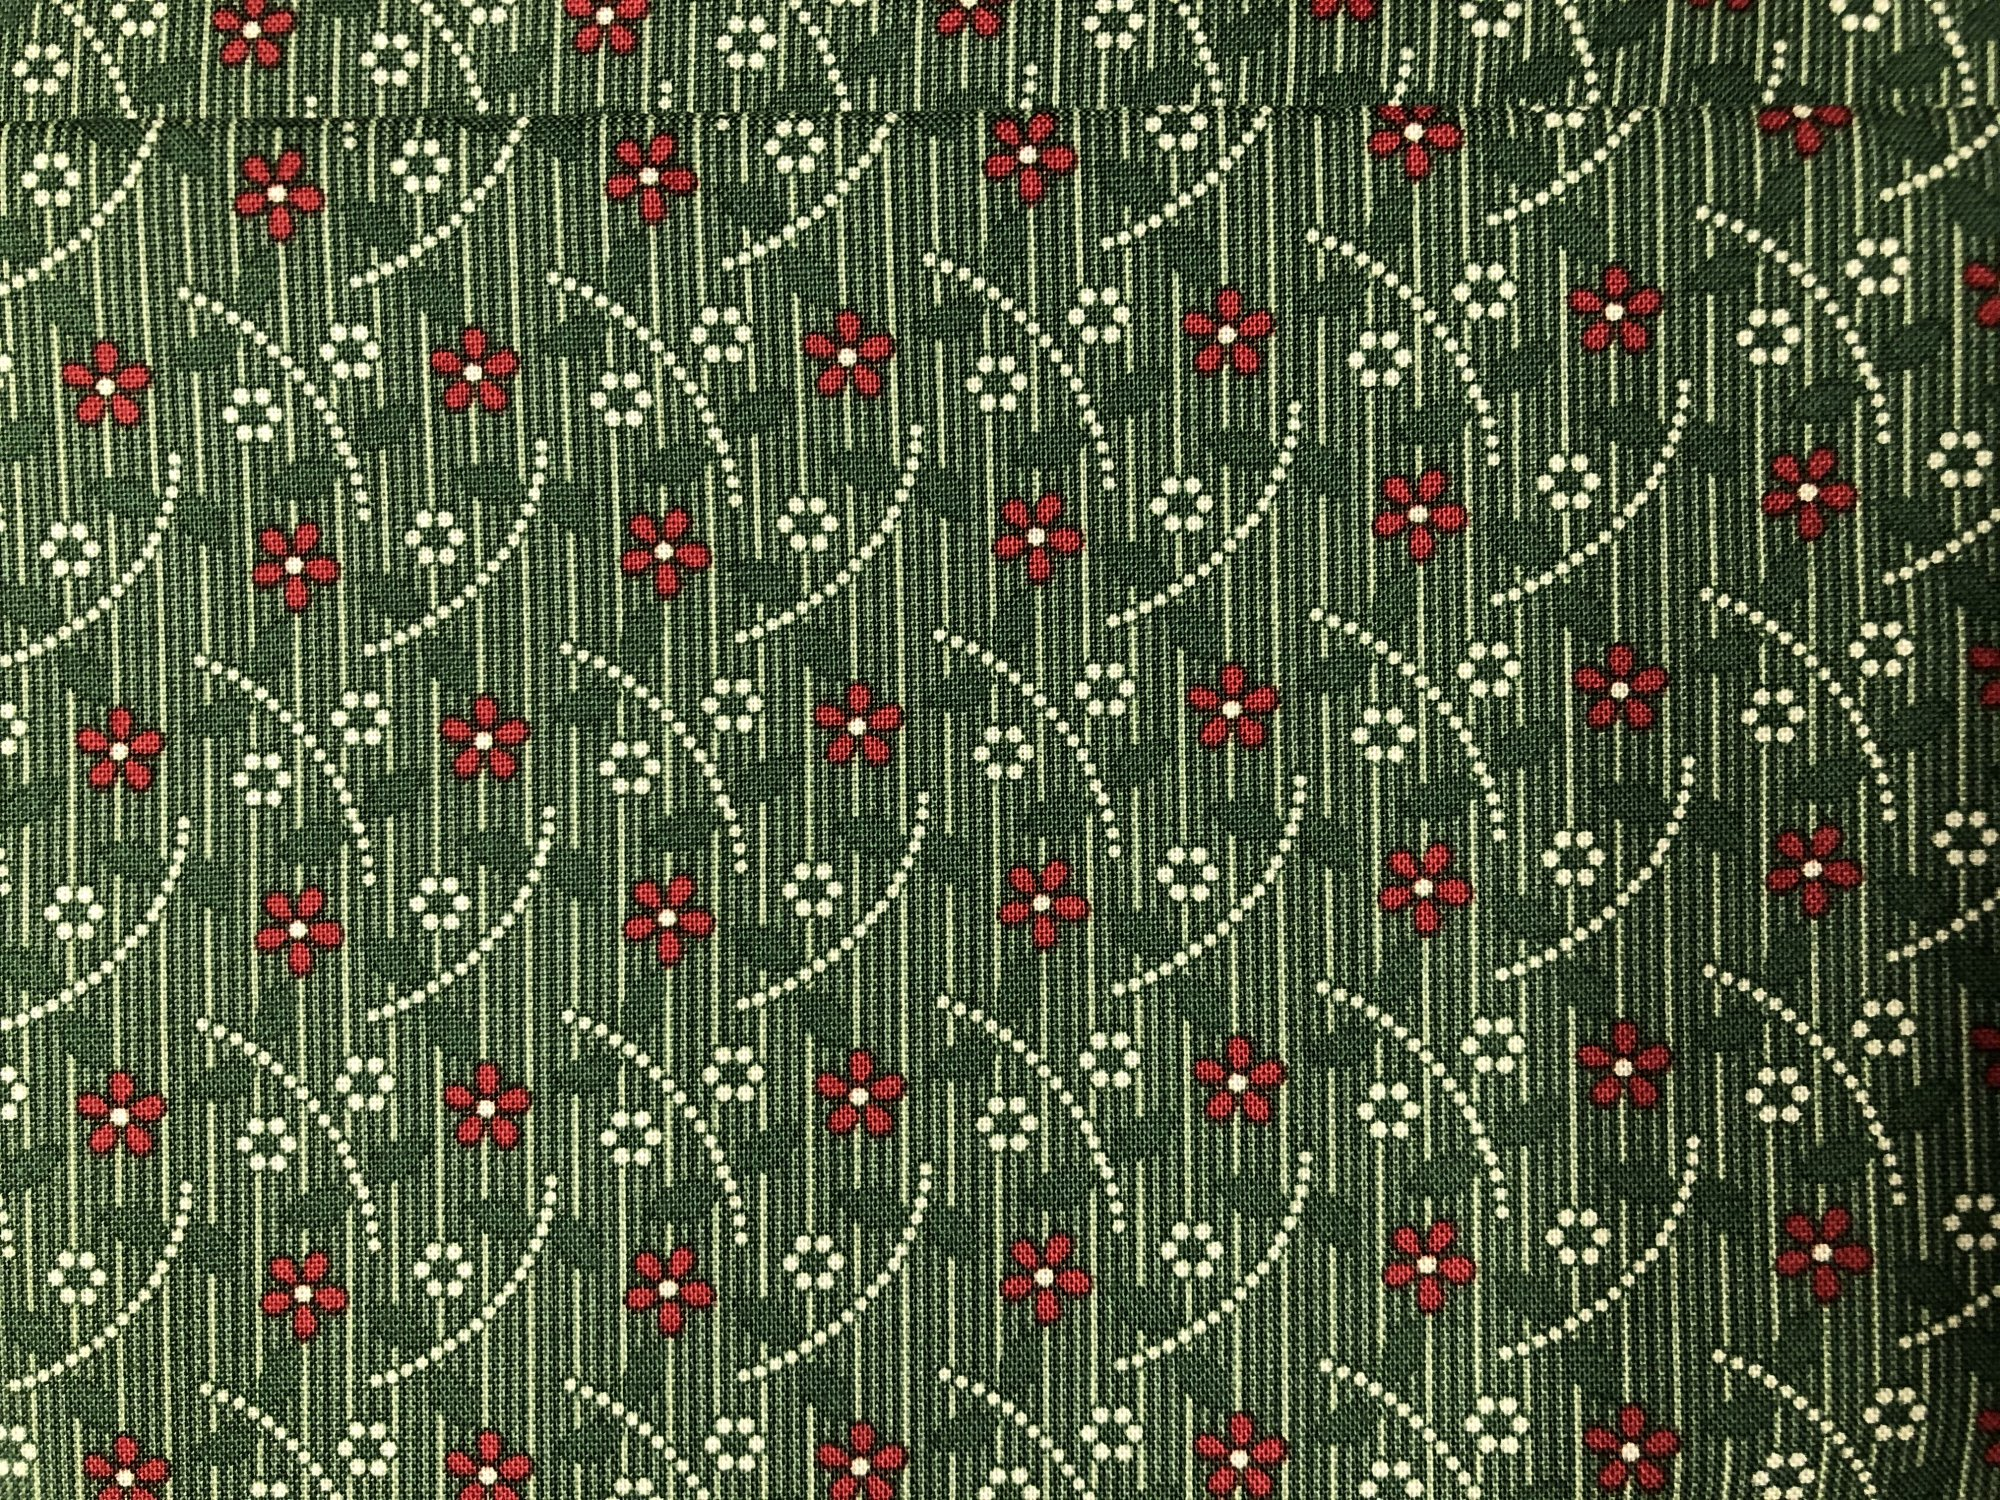 Heritage Red and Green-green floral